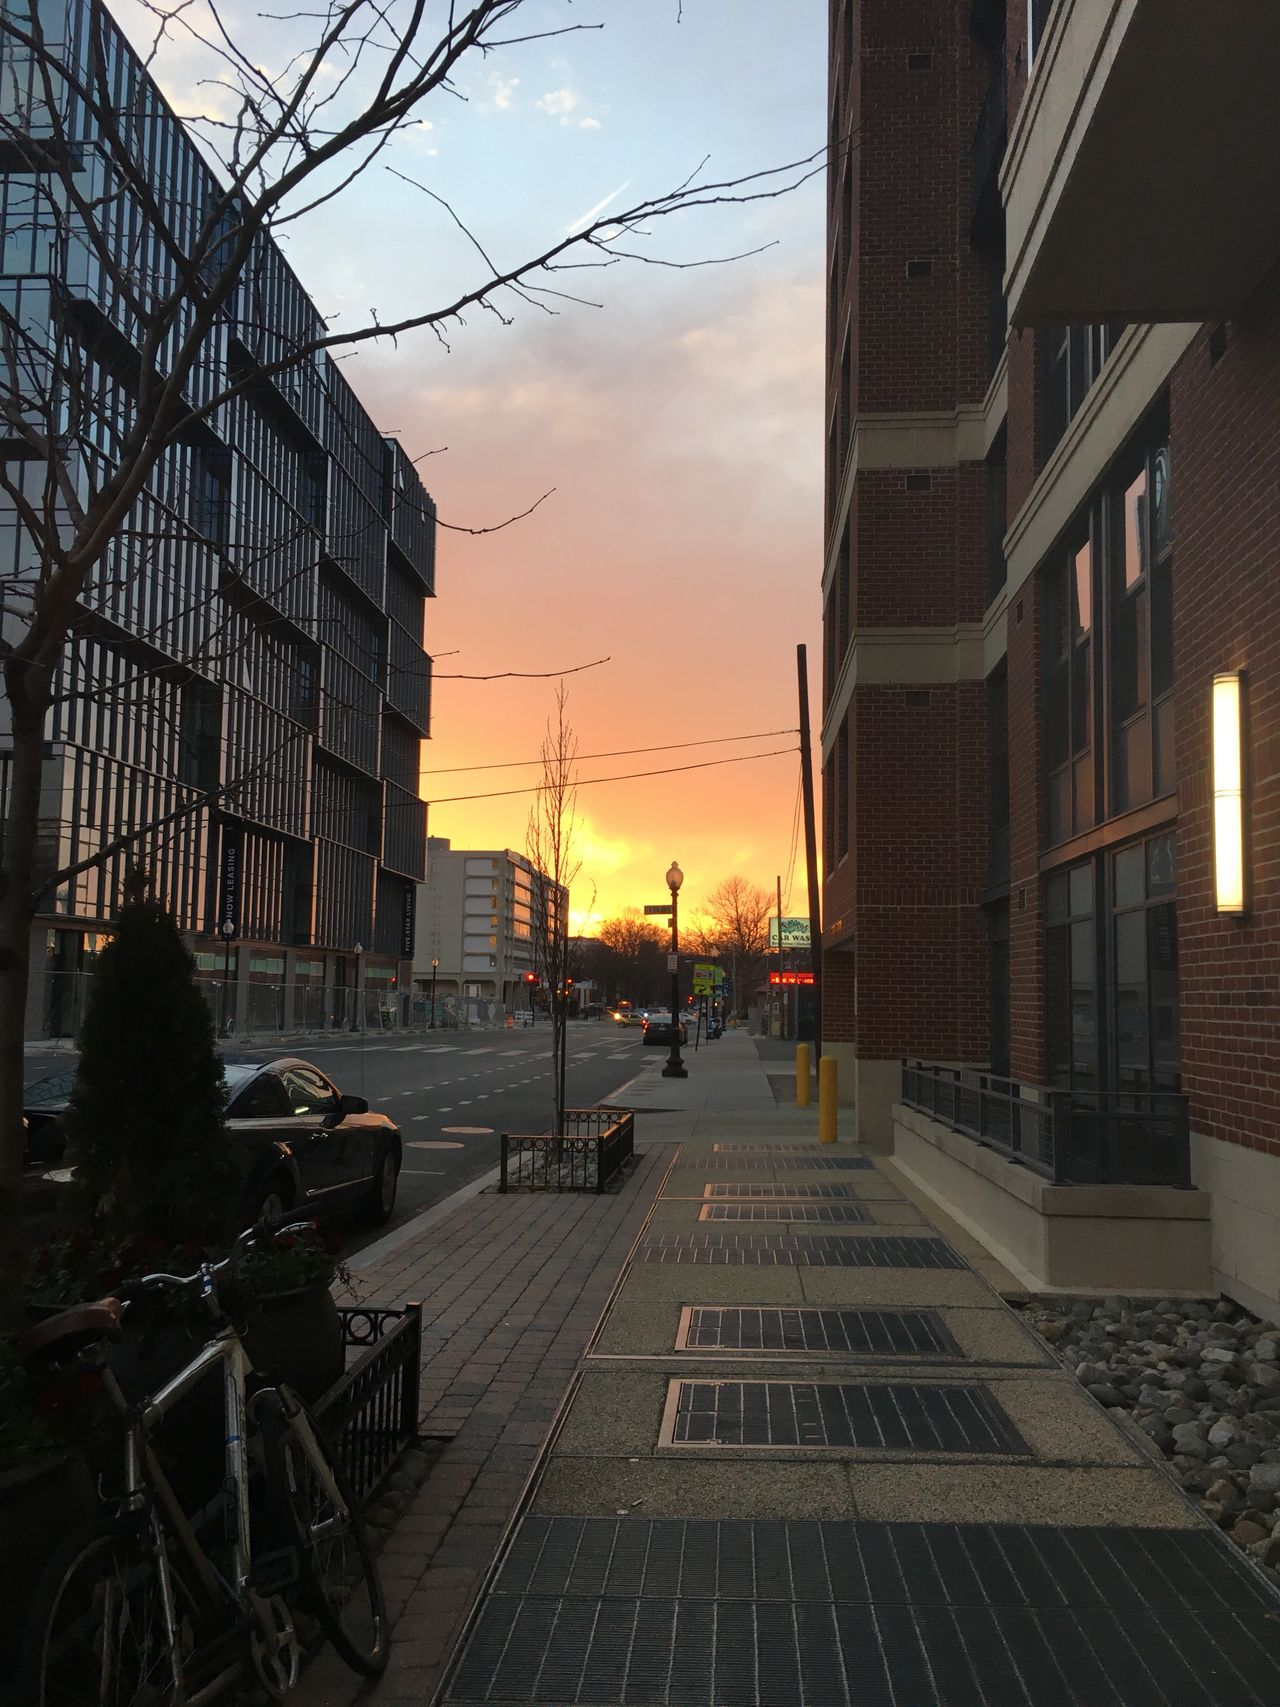 Sunset in the city #skyonfire #flickr #rushhour 30147